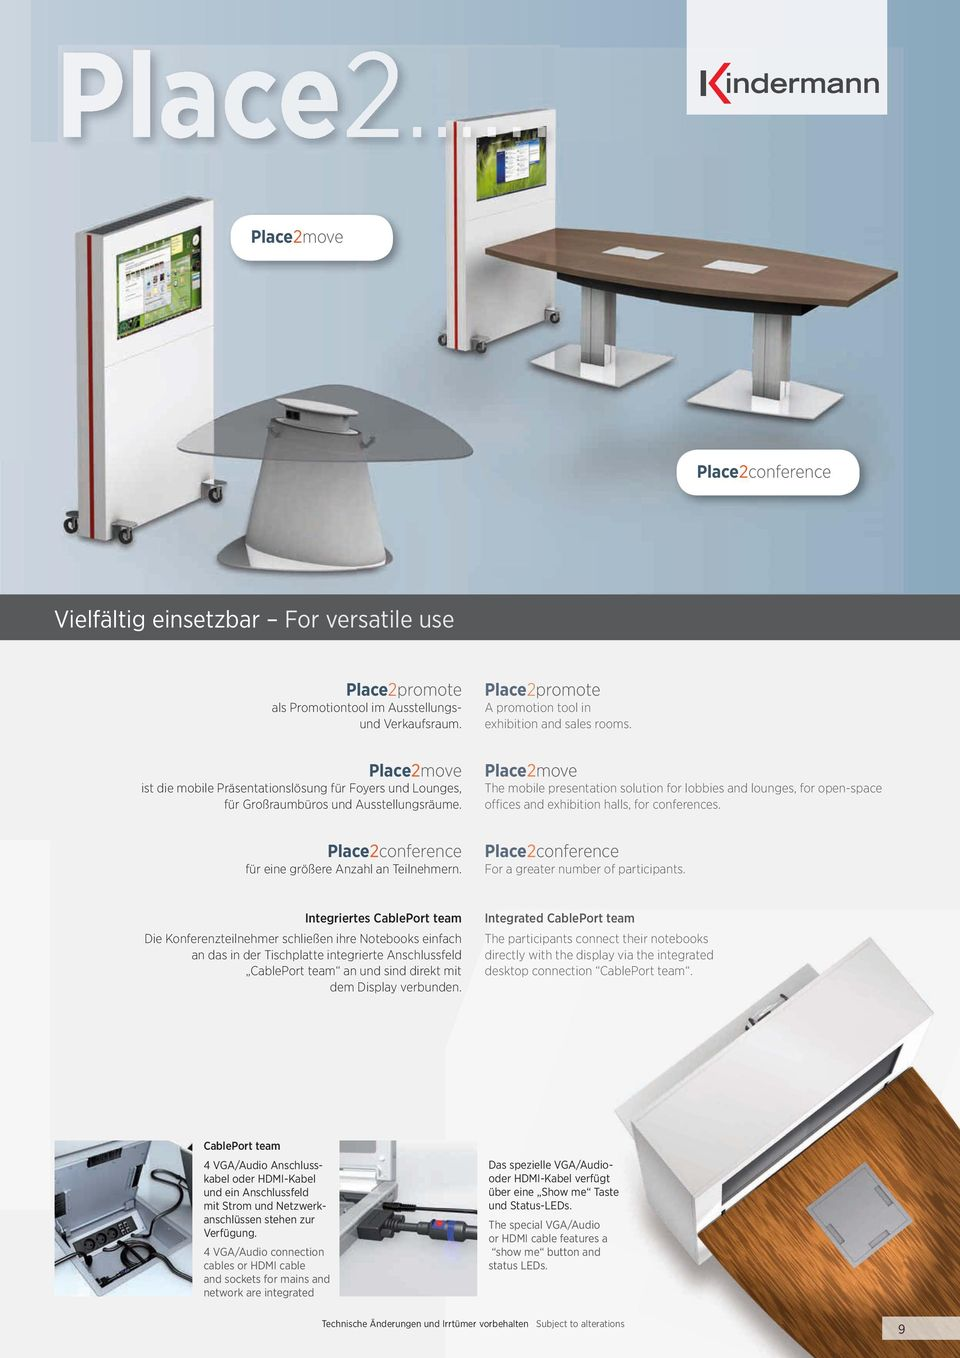 Place2move The mobile presentation solution for lobbies and lounges, for open-space offices and exhibition halls, for conferences. Place2conference für eine größere Anzahl an Teilnehmern.